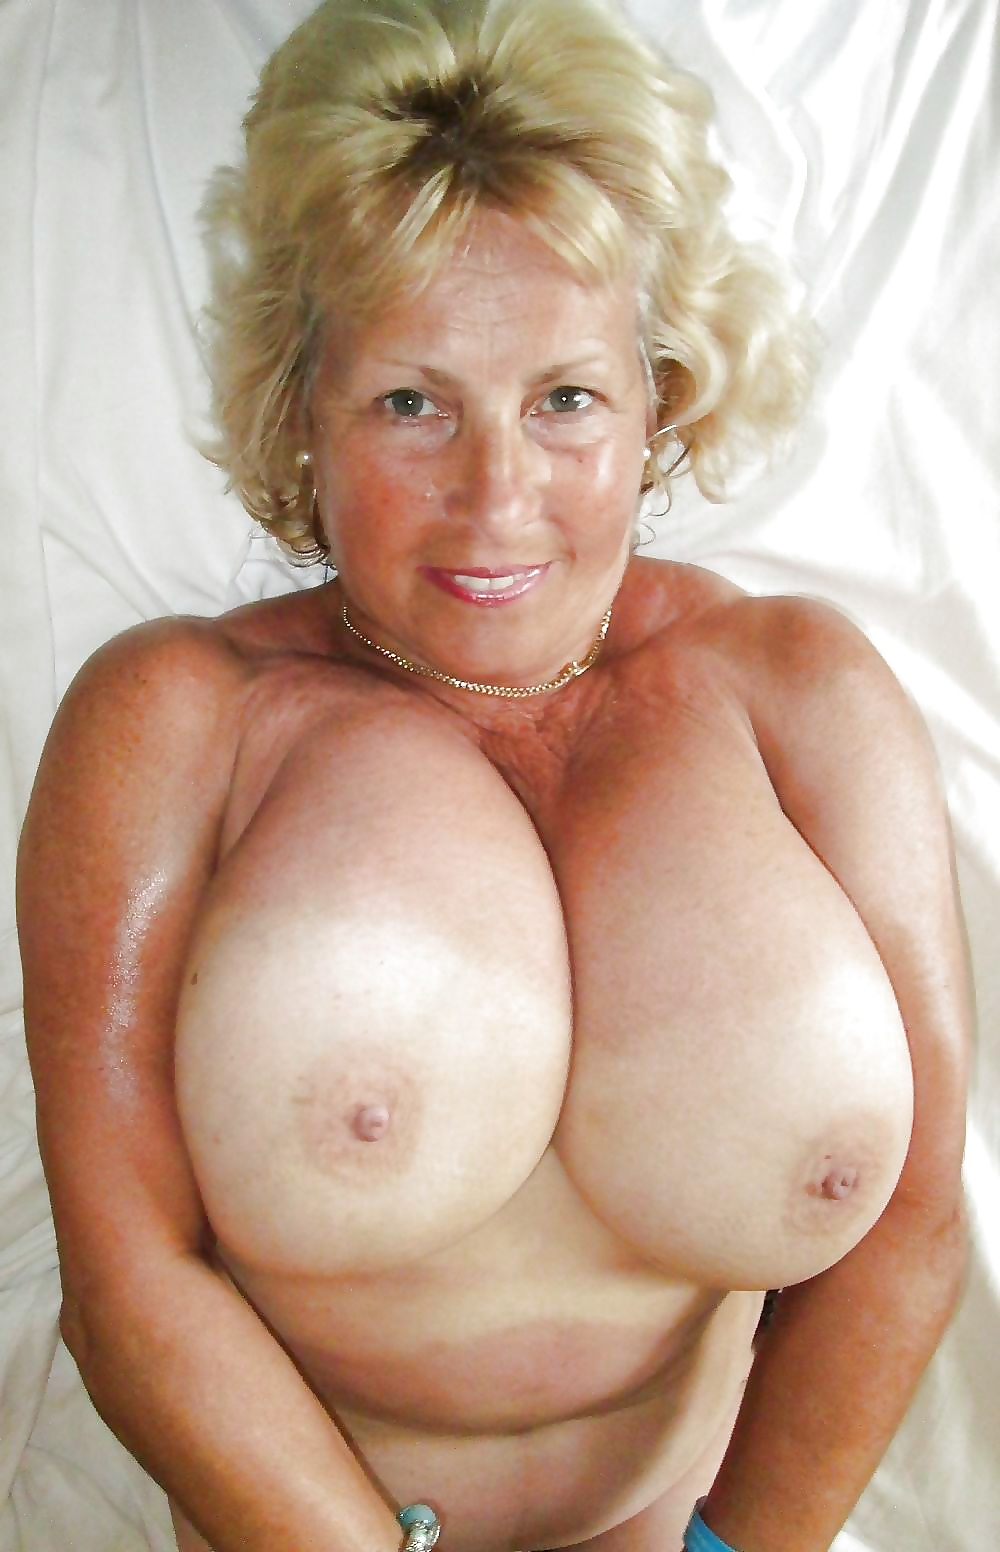 pics-xxx-breasts-granny-photographs-deol-full